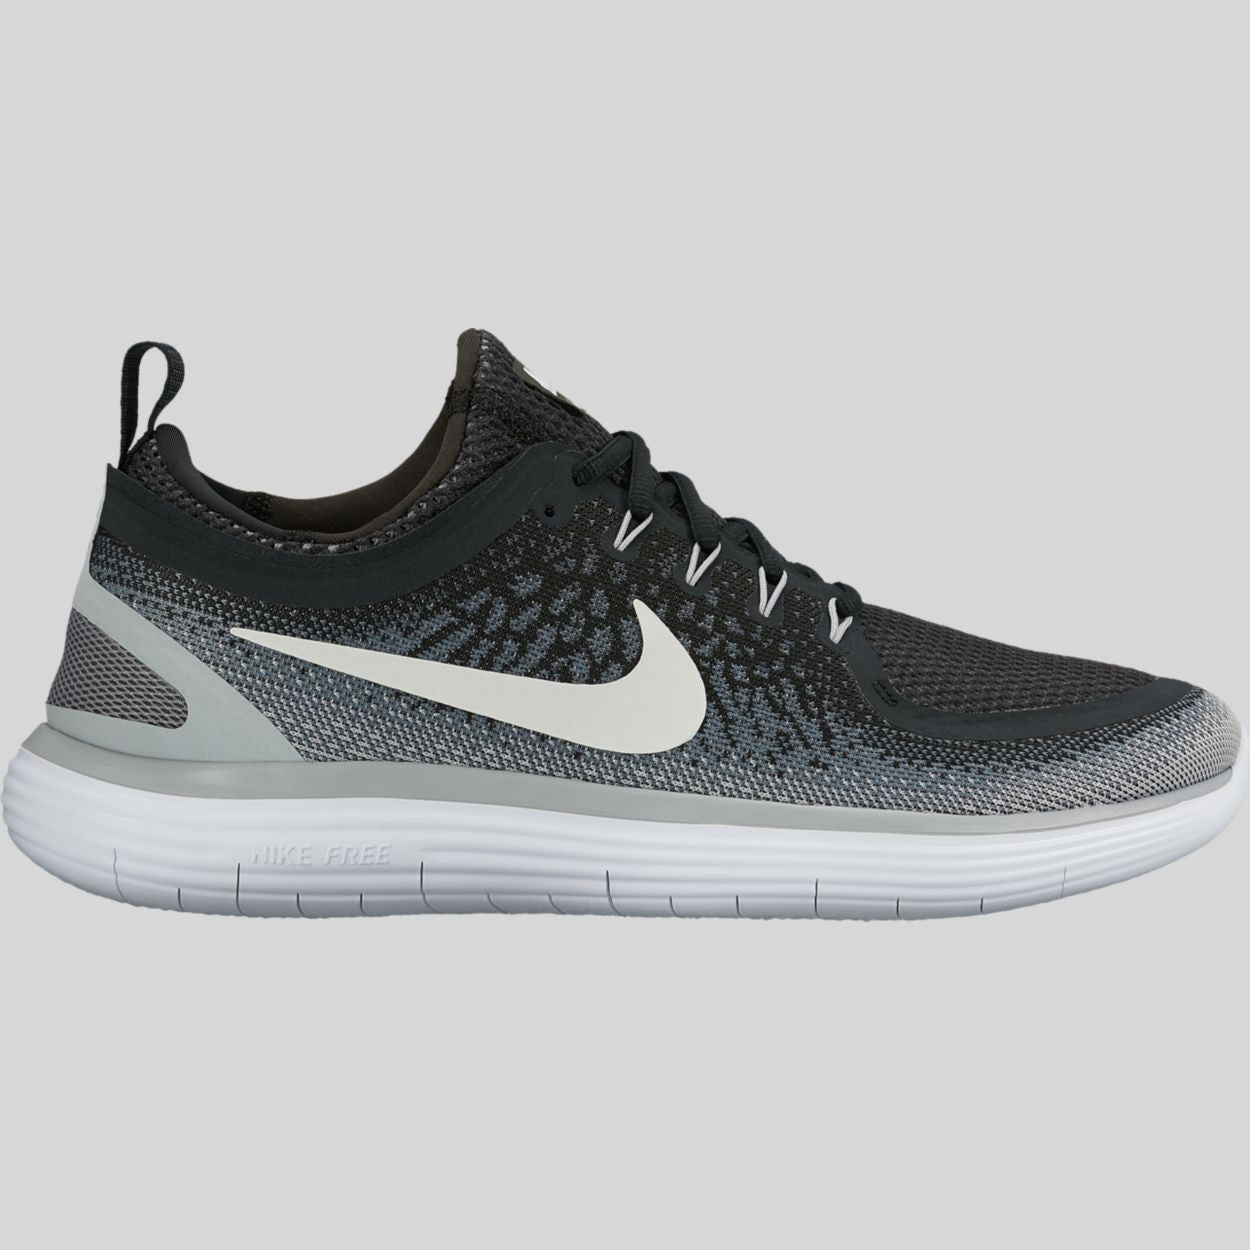 new style 525d5 d113e Nike Free RN Distance 2 Black White Cool Grey Dark Grey